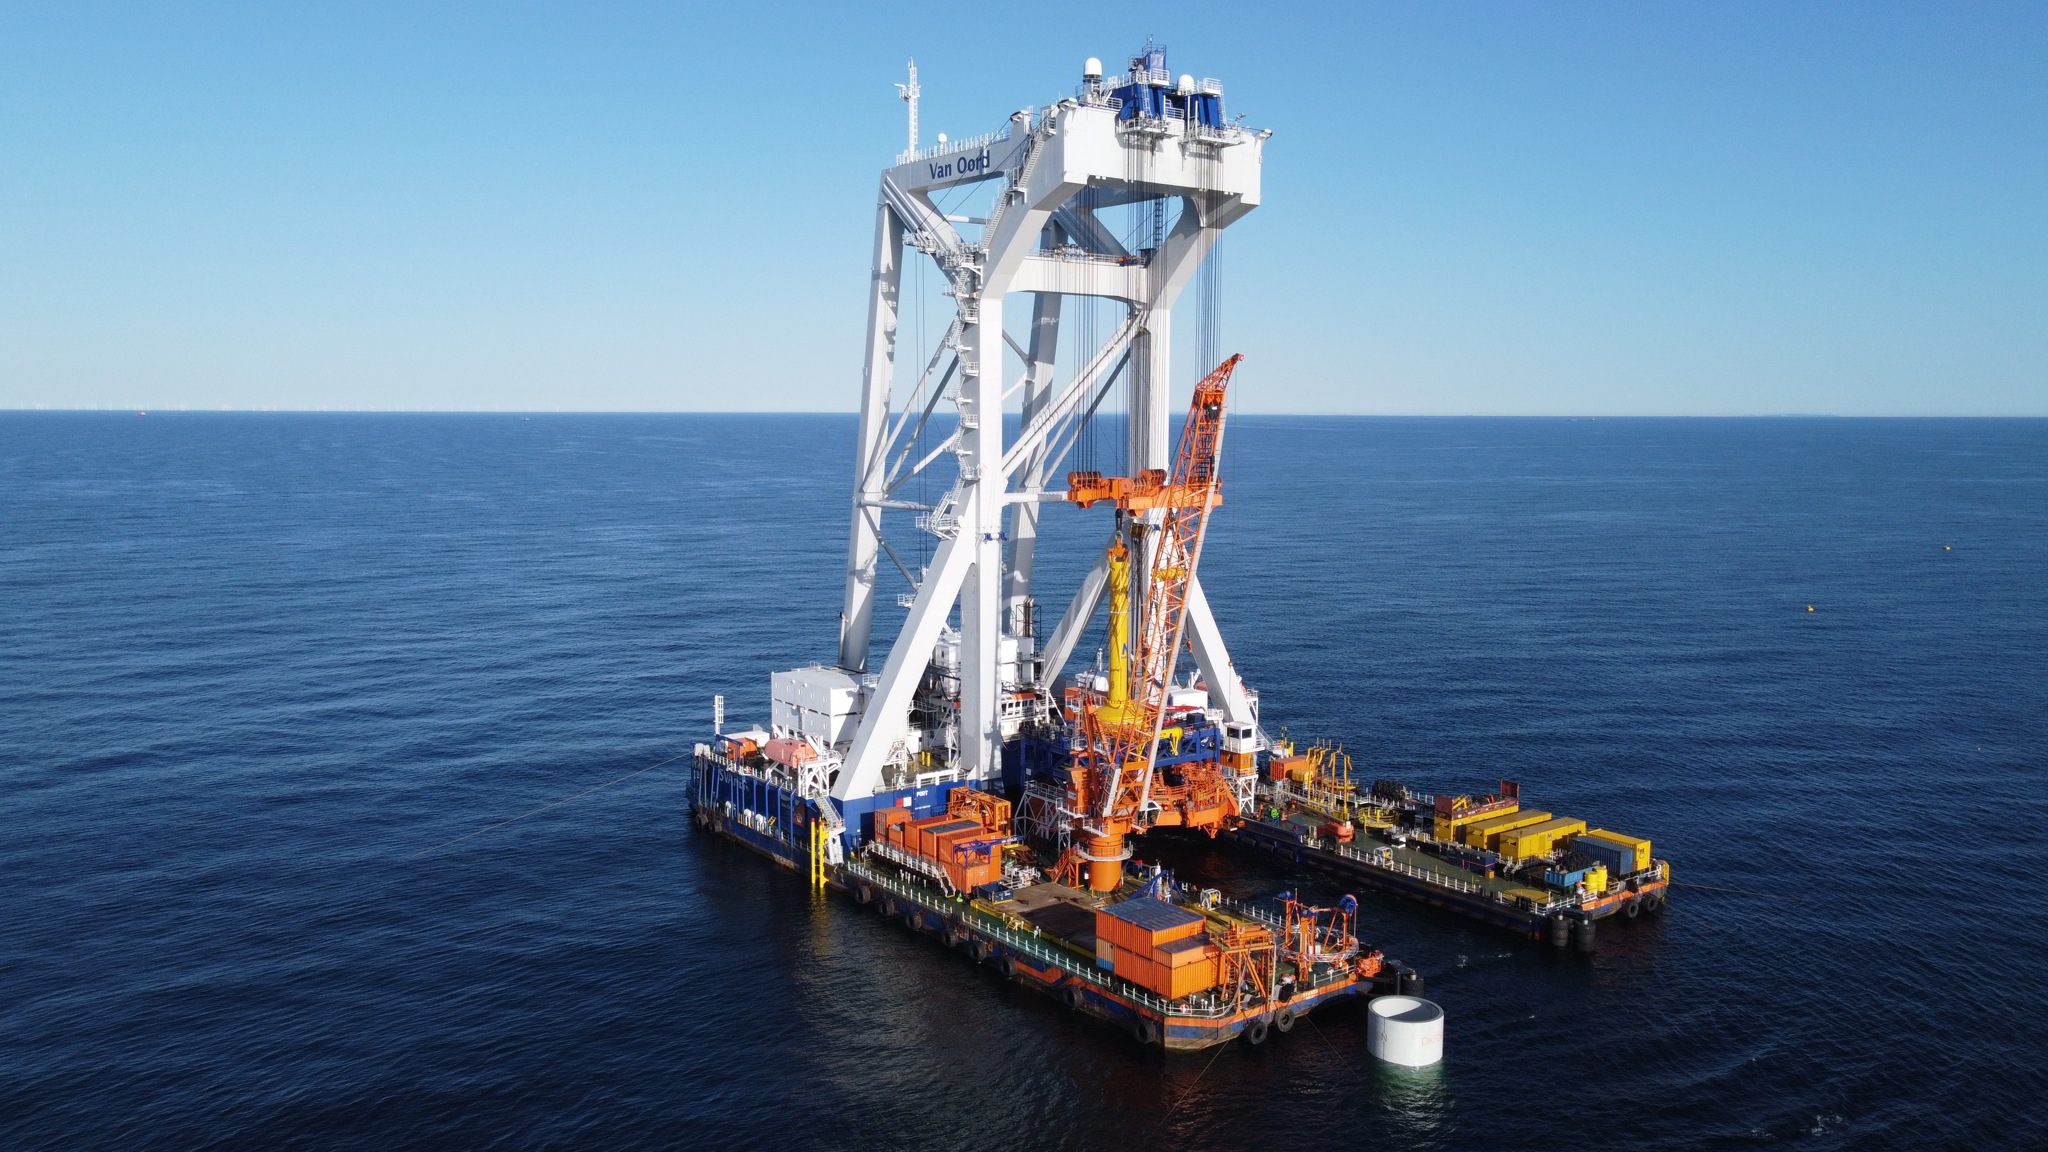 Van Oord to Install Foundations, Inter-Array Cables on Iberdrola's German OWF